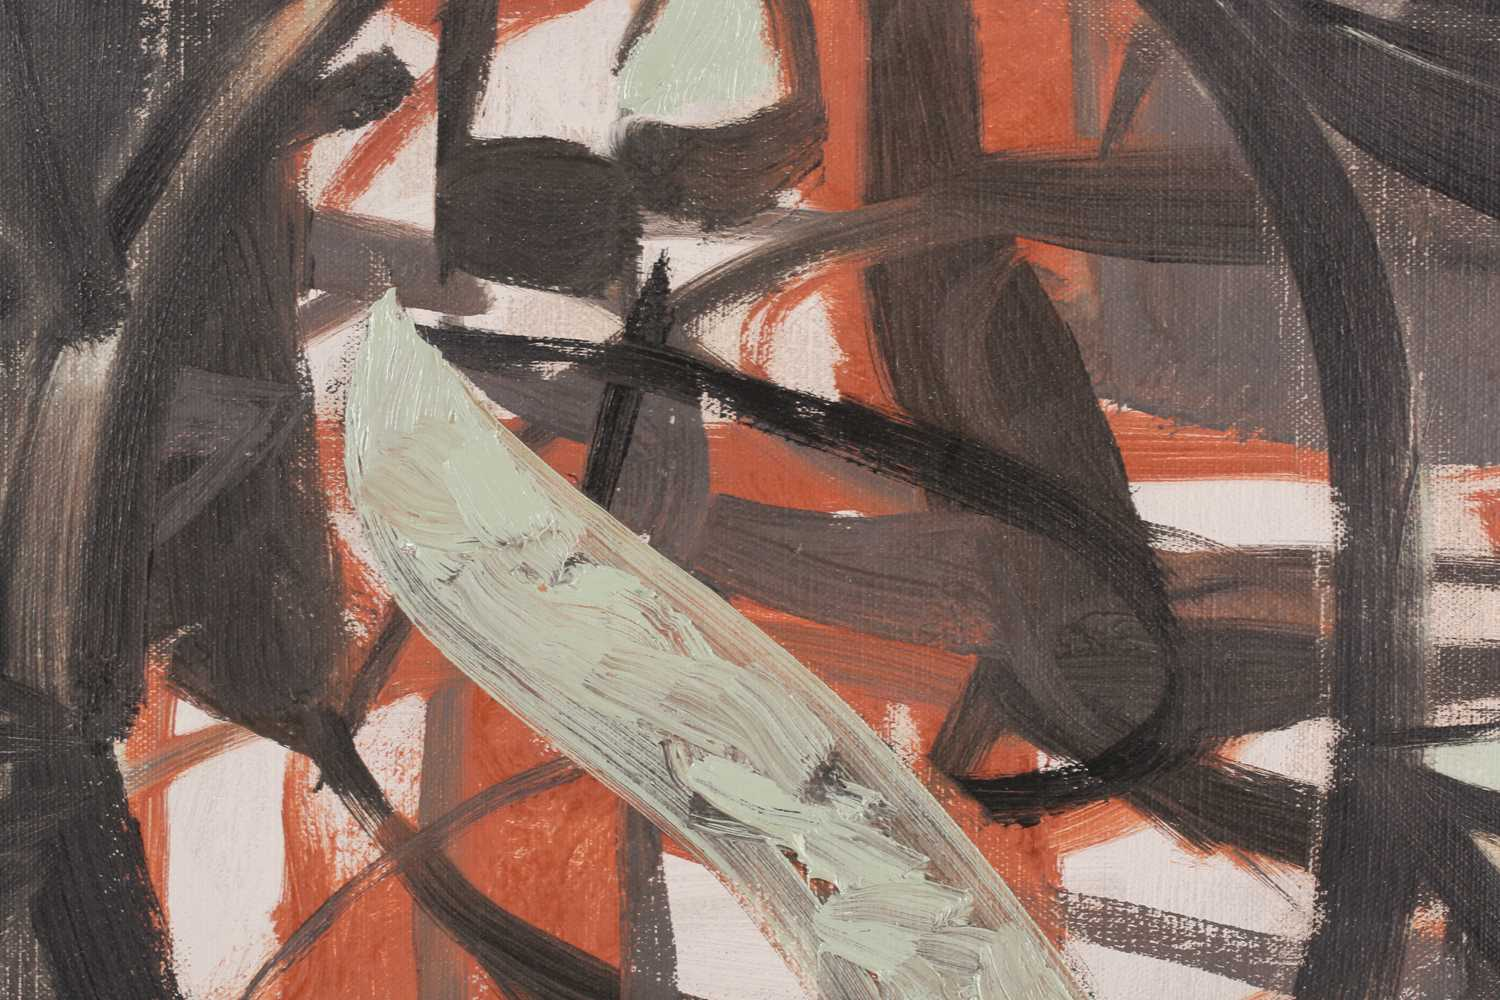 Maurice Cockrill RA (1936-2013), an unframed abstract oil on canvas, 'Earth Opening', signed verso - Image 2 of 3